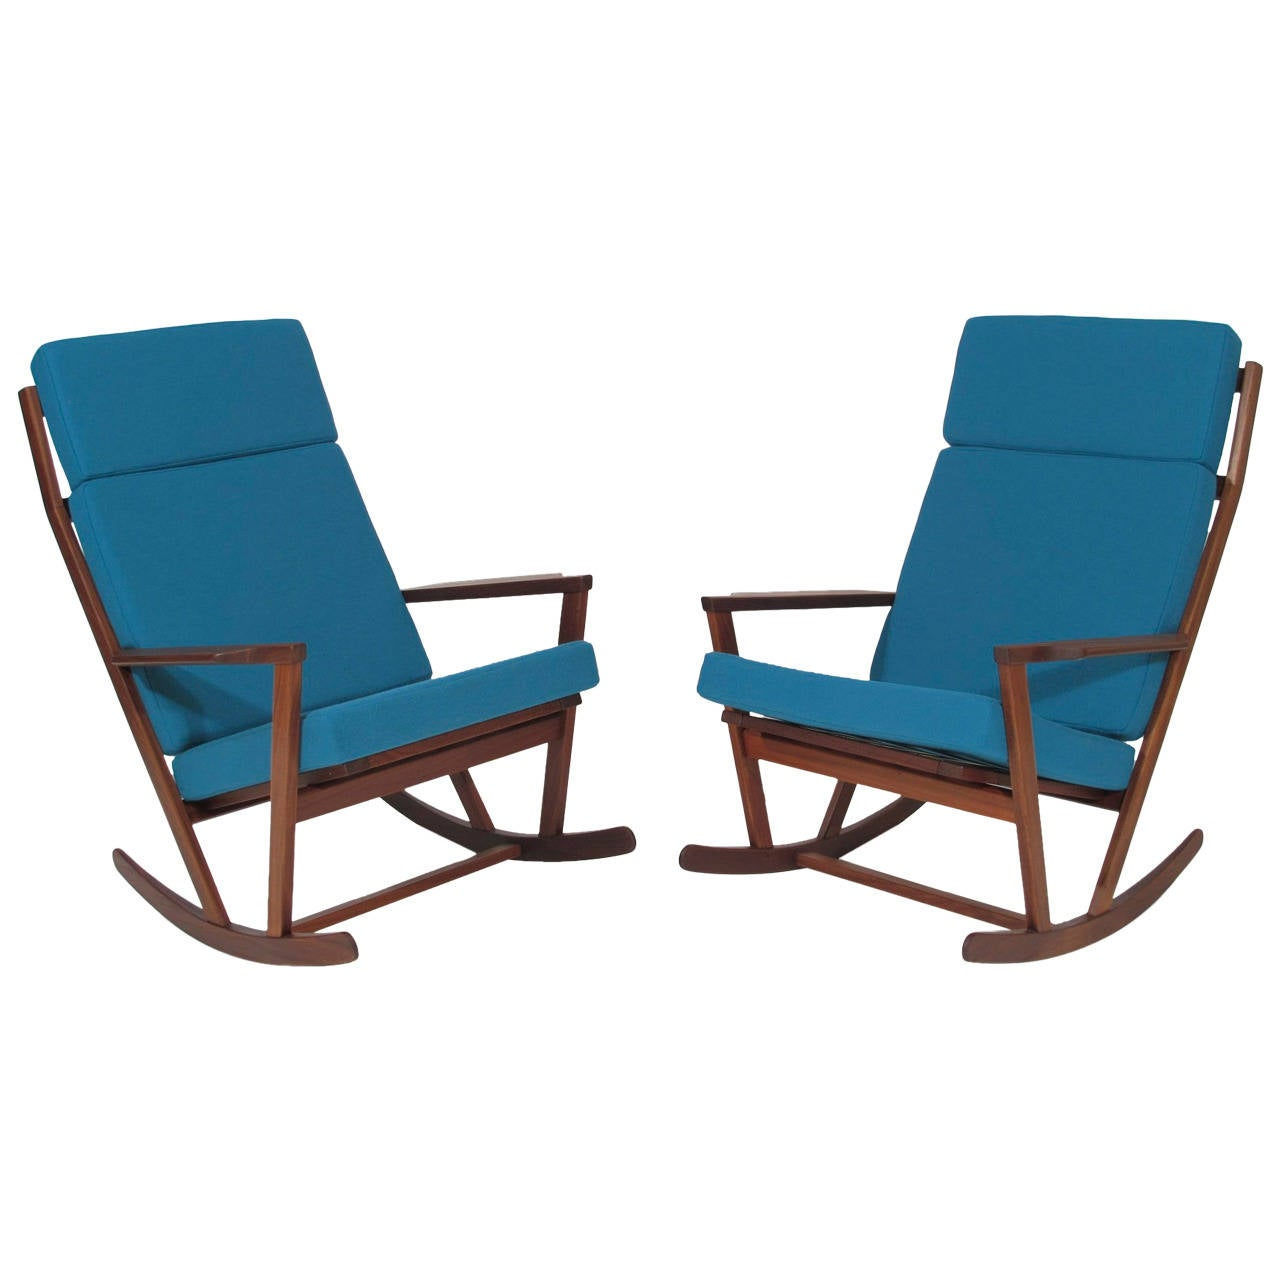 hans wegner rocking chair cover hire rugeley poul volther danish at 1stdibs